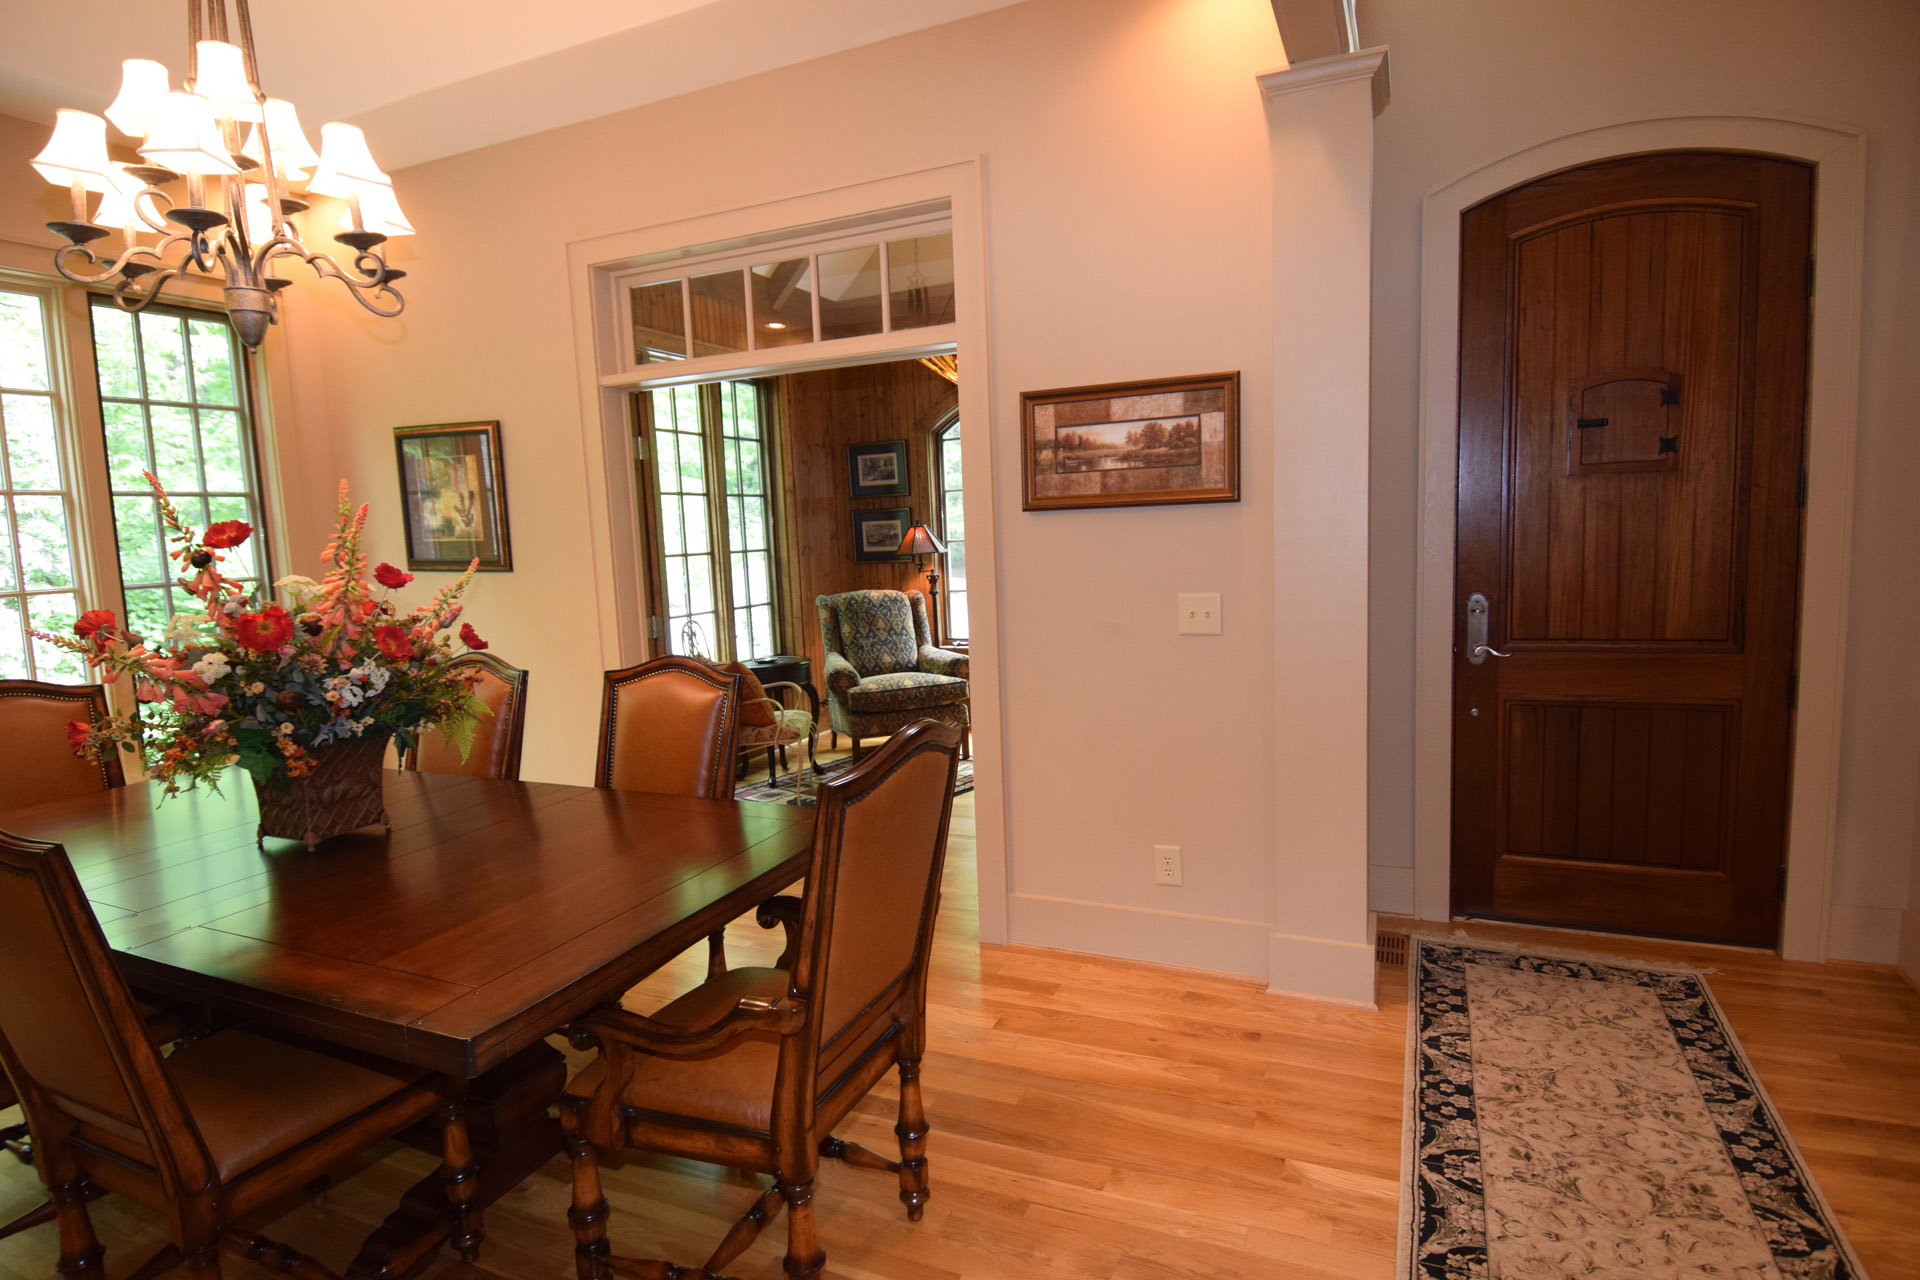 ShilohCreekModelHome_2017Revisions_Dining.jpg